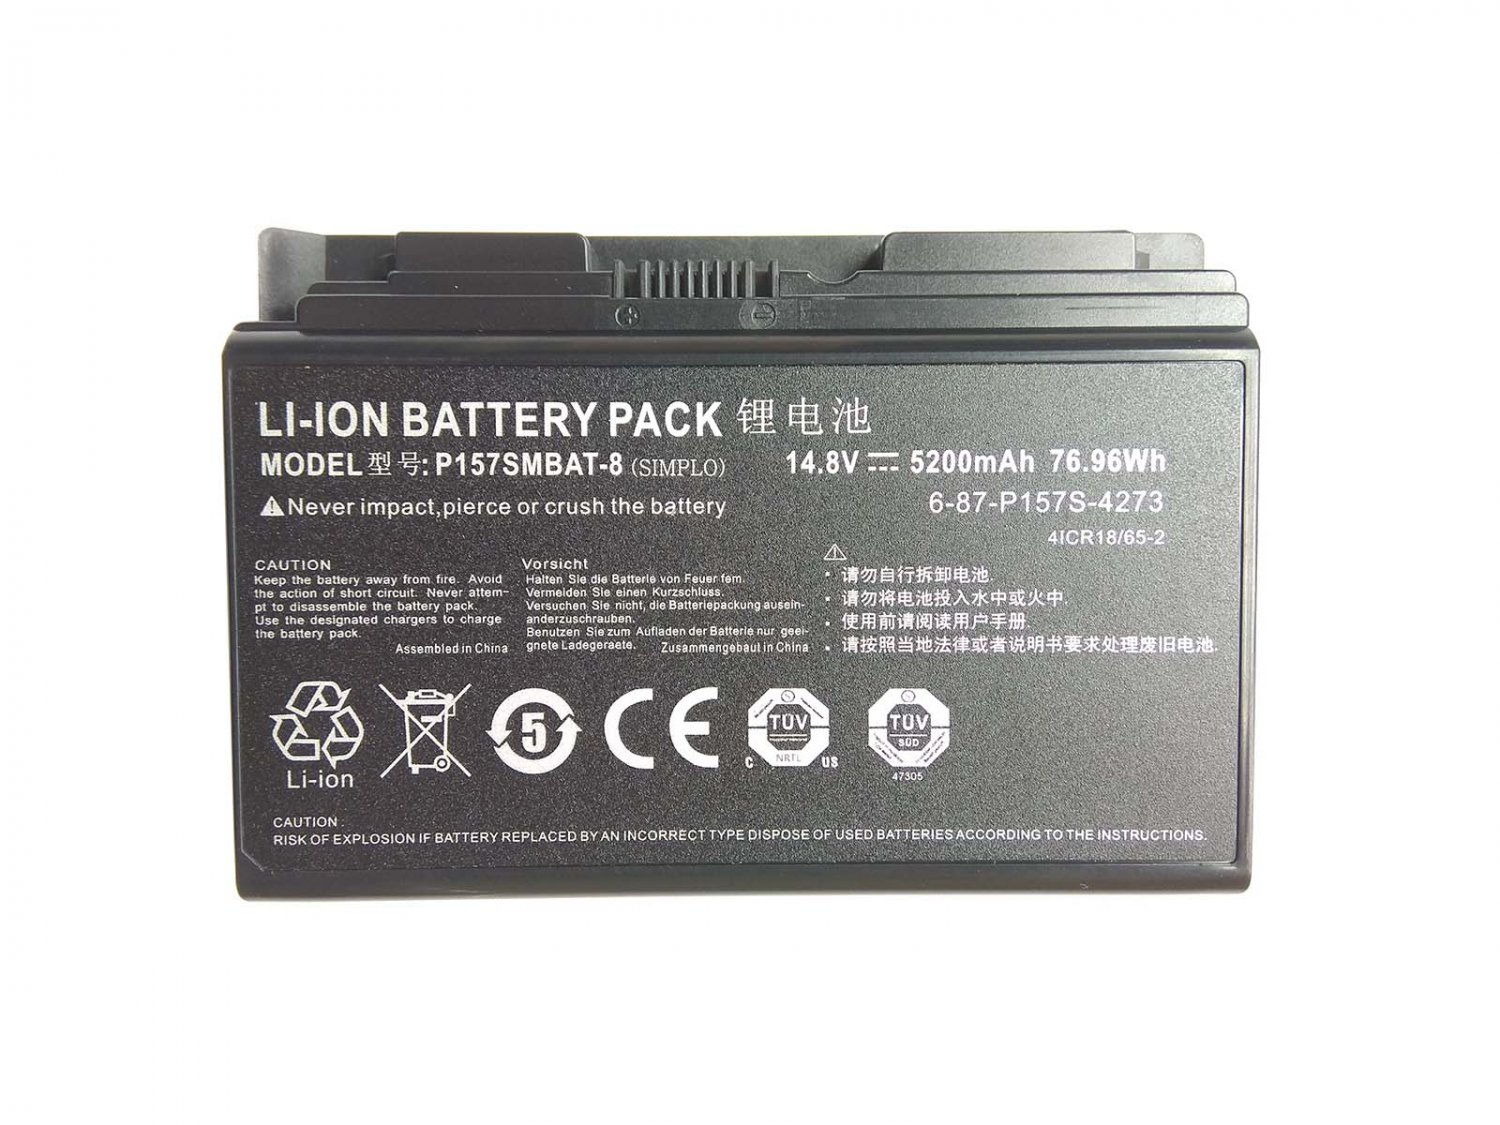 New Genuine P157SMBAT-8 Battery for Clevo 6-87-P157S-4272 P157SM P177SM-A